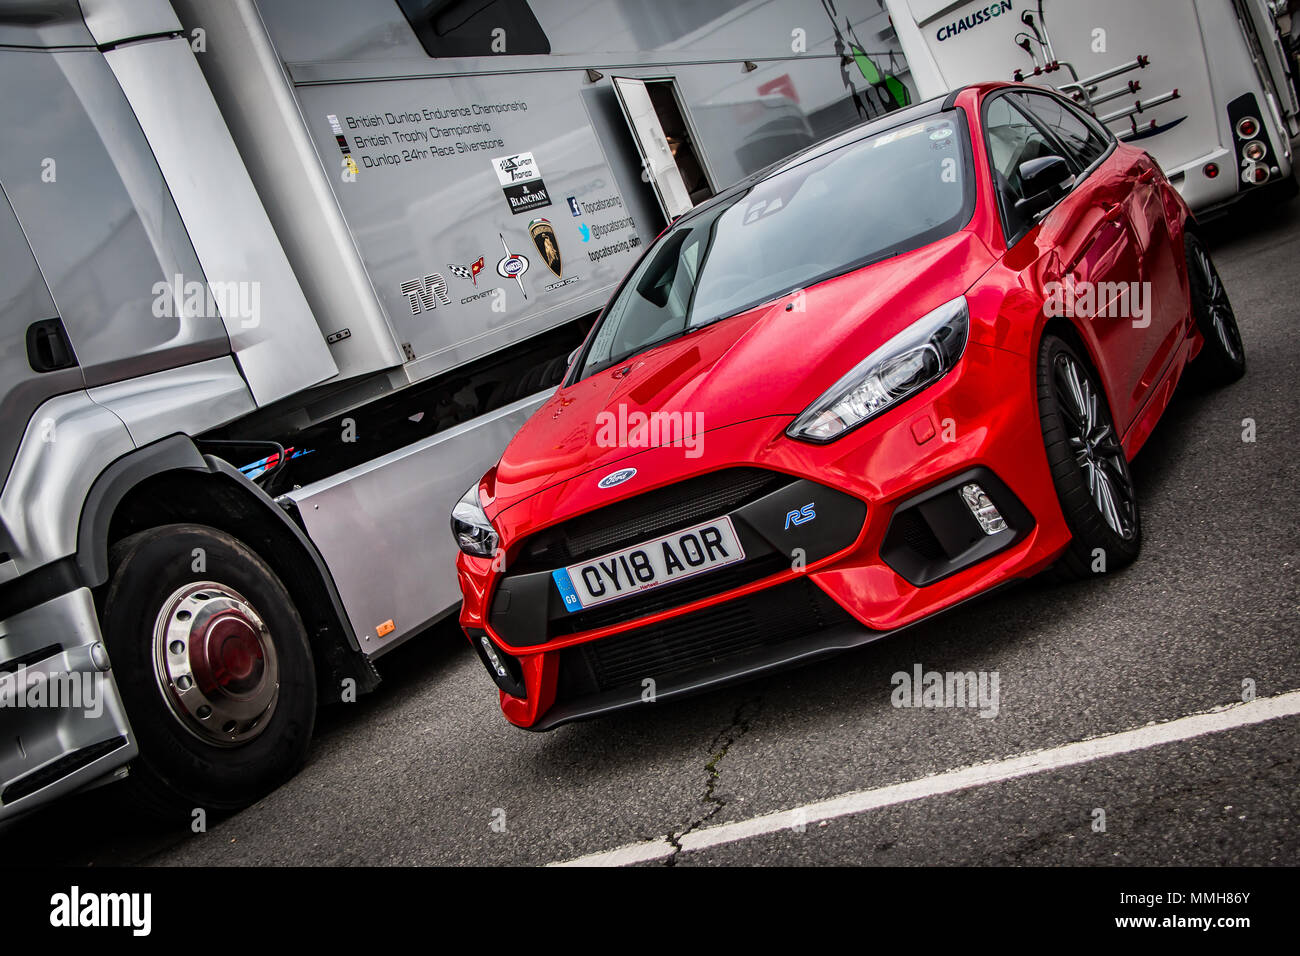 A modern Red Edition Ford Focus RS hatchback car - Stock Image